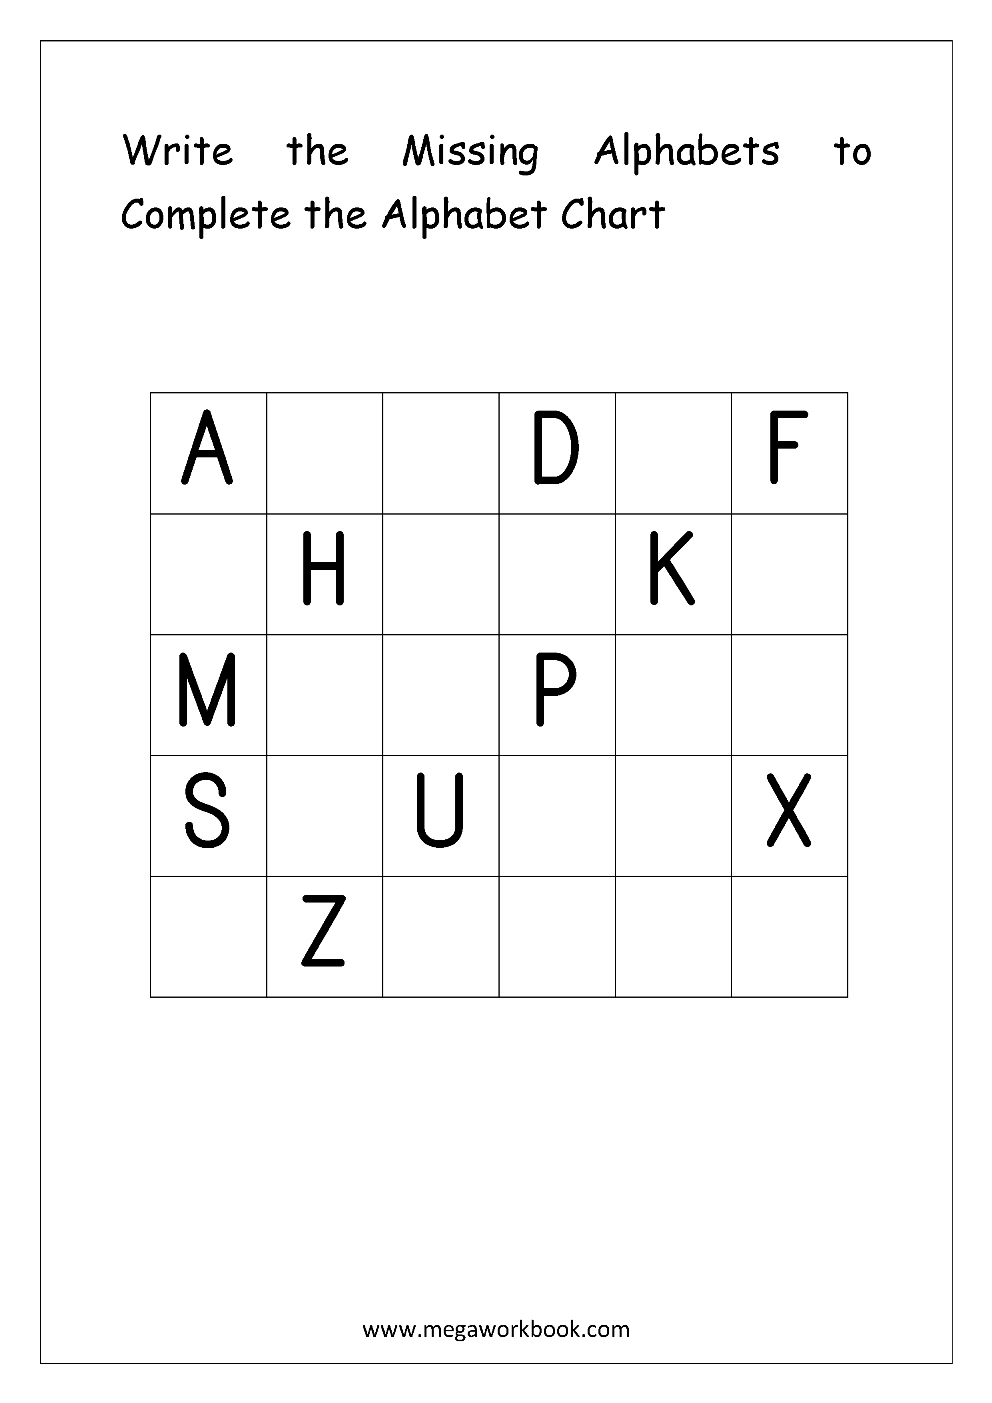 English Worksheets - Alphabetical Sequence | English